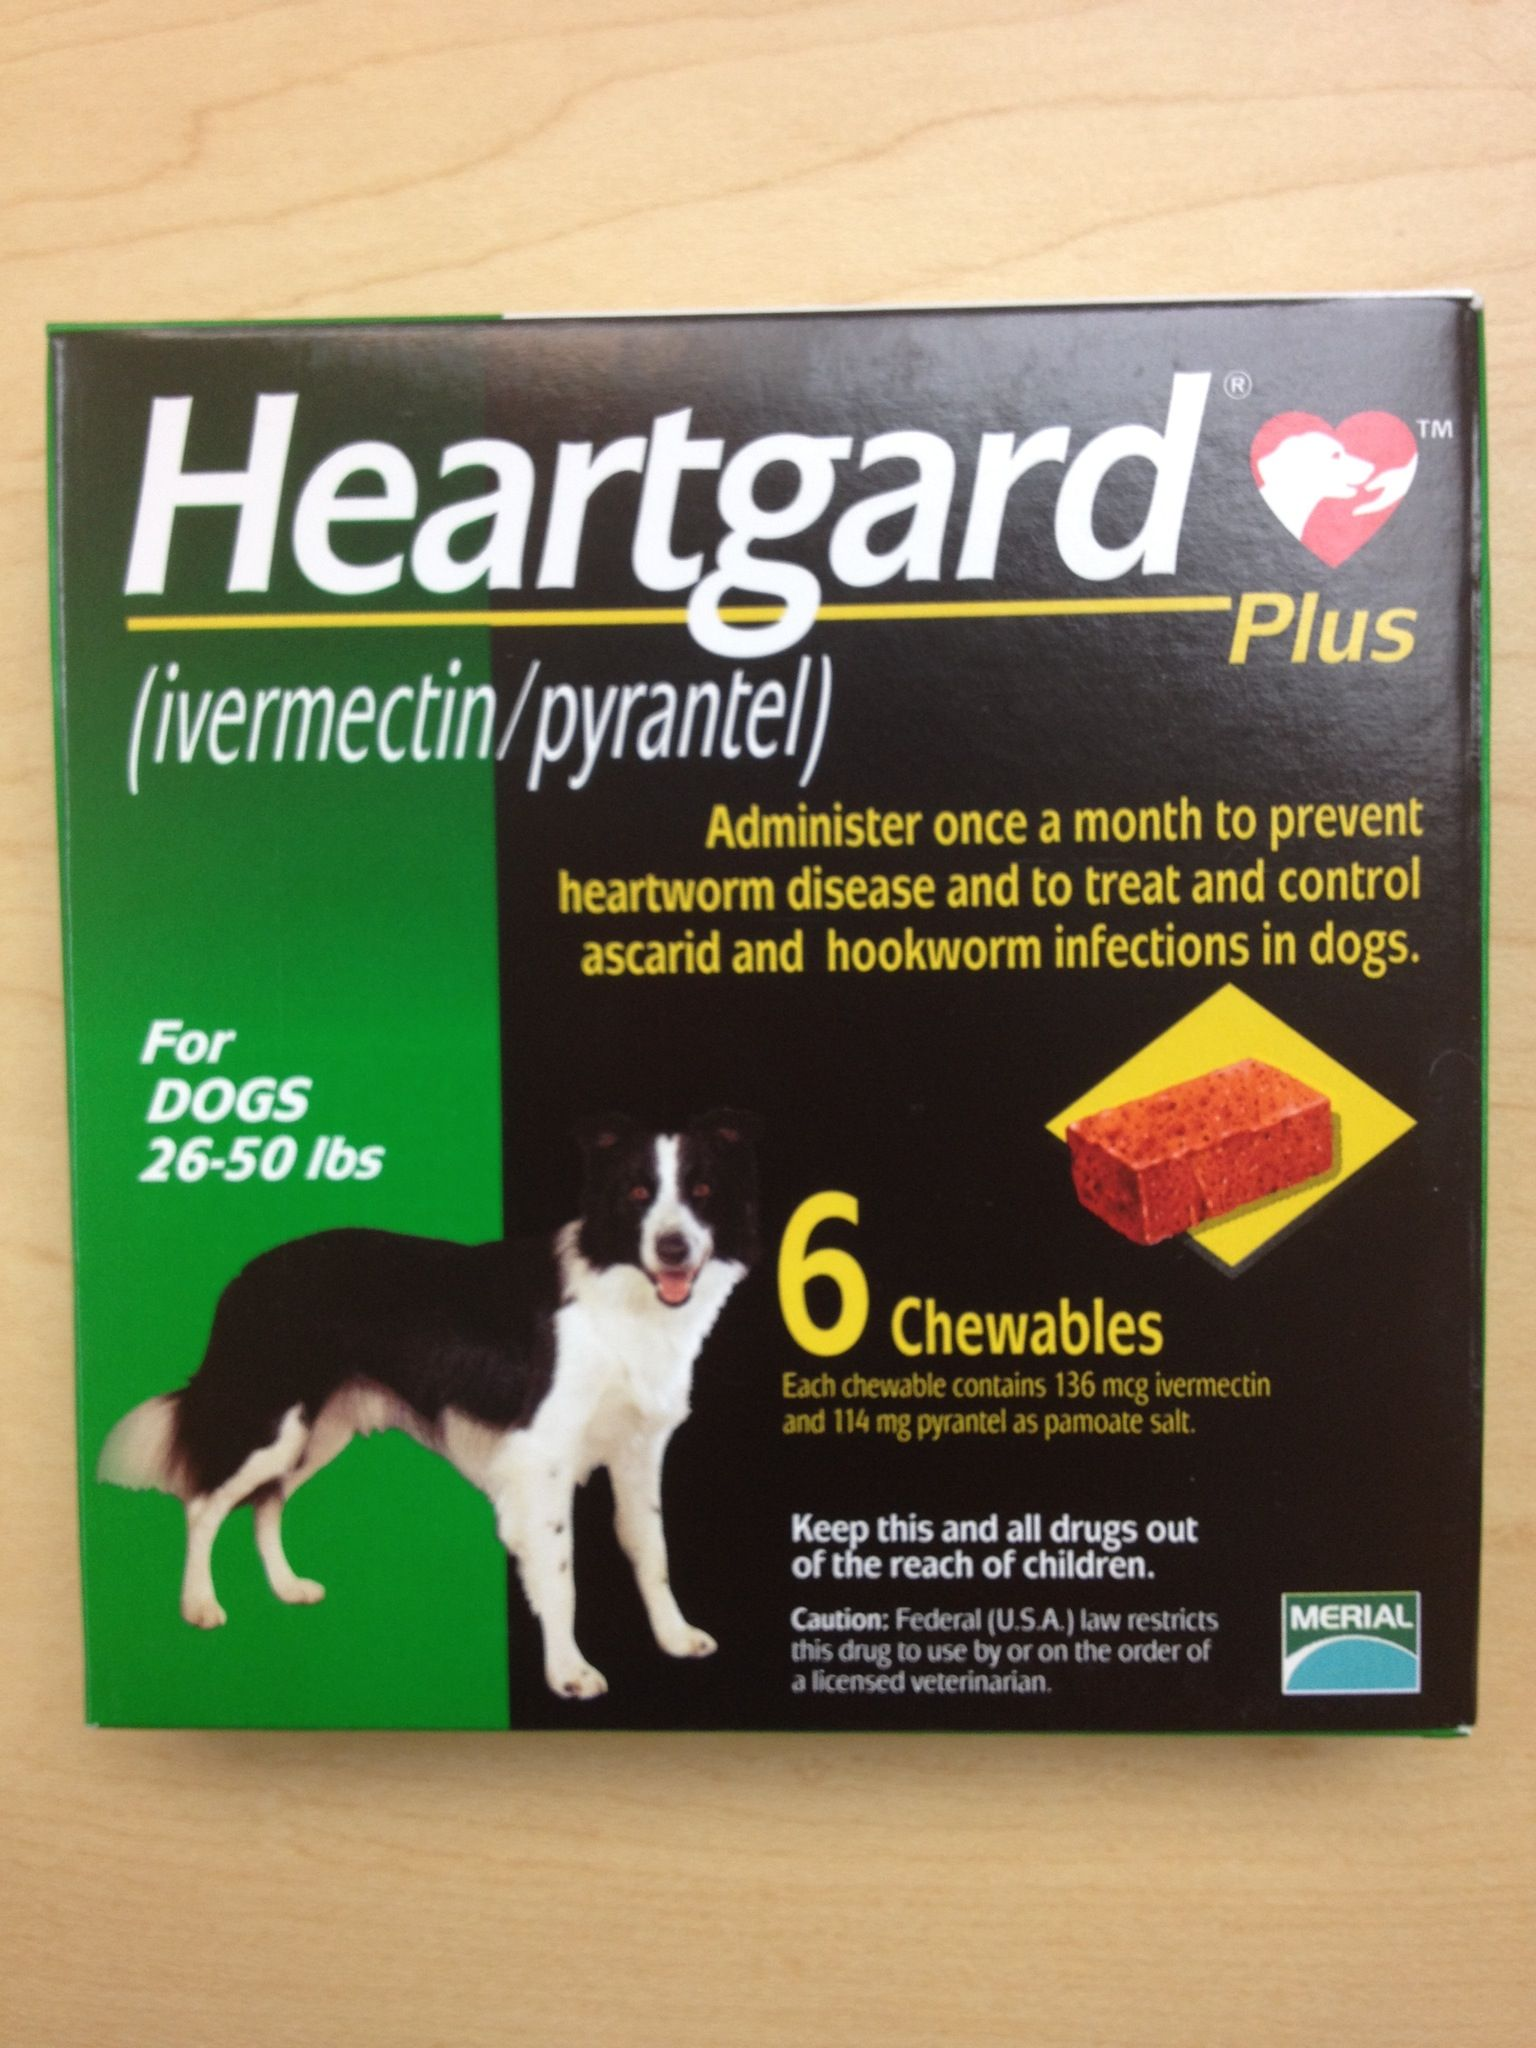 Heartgard can be used for dogs and cats, as well as